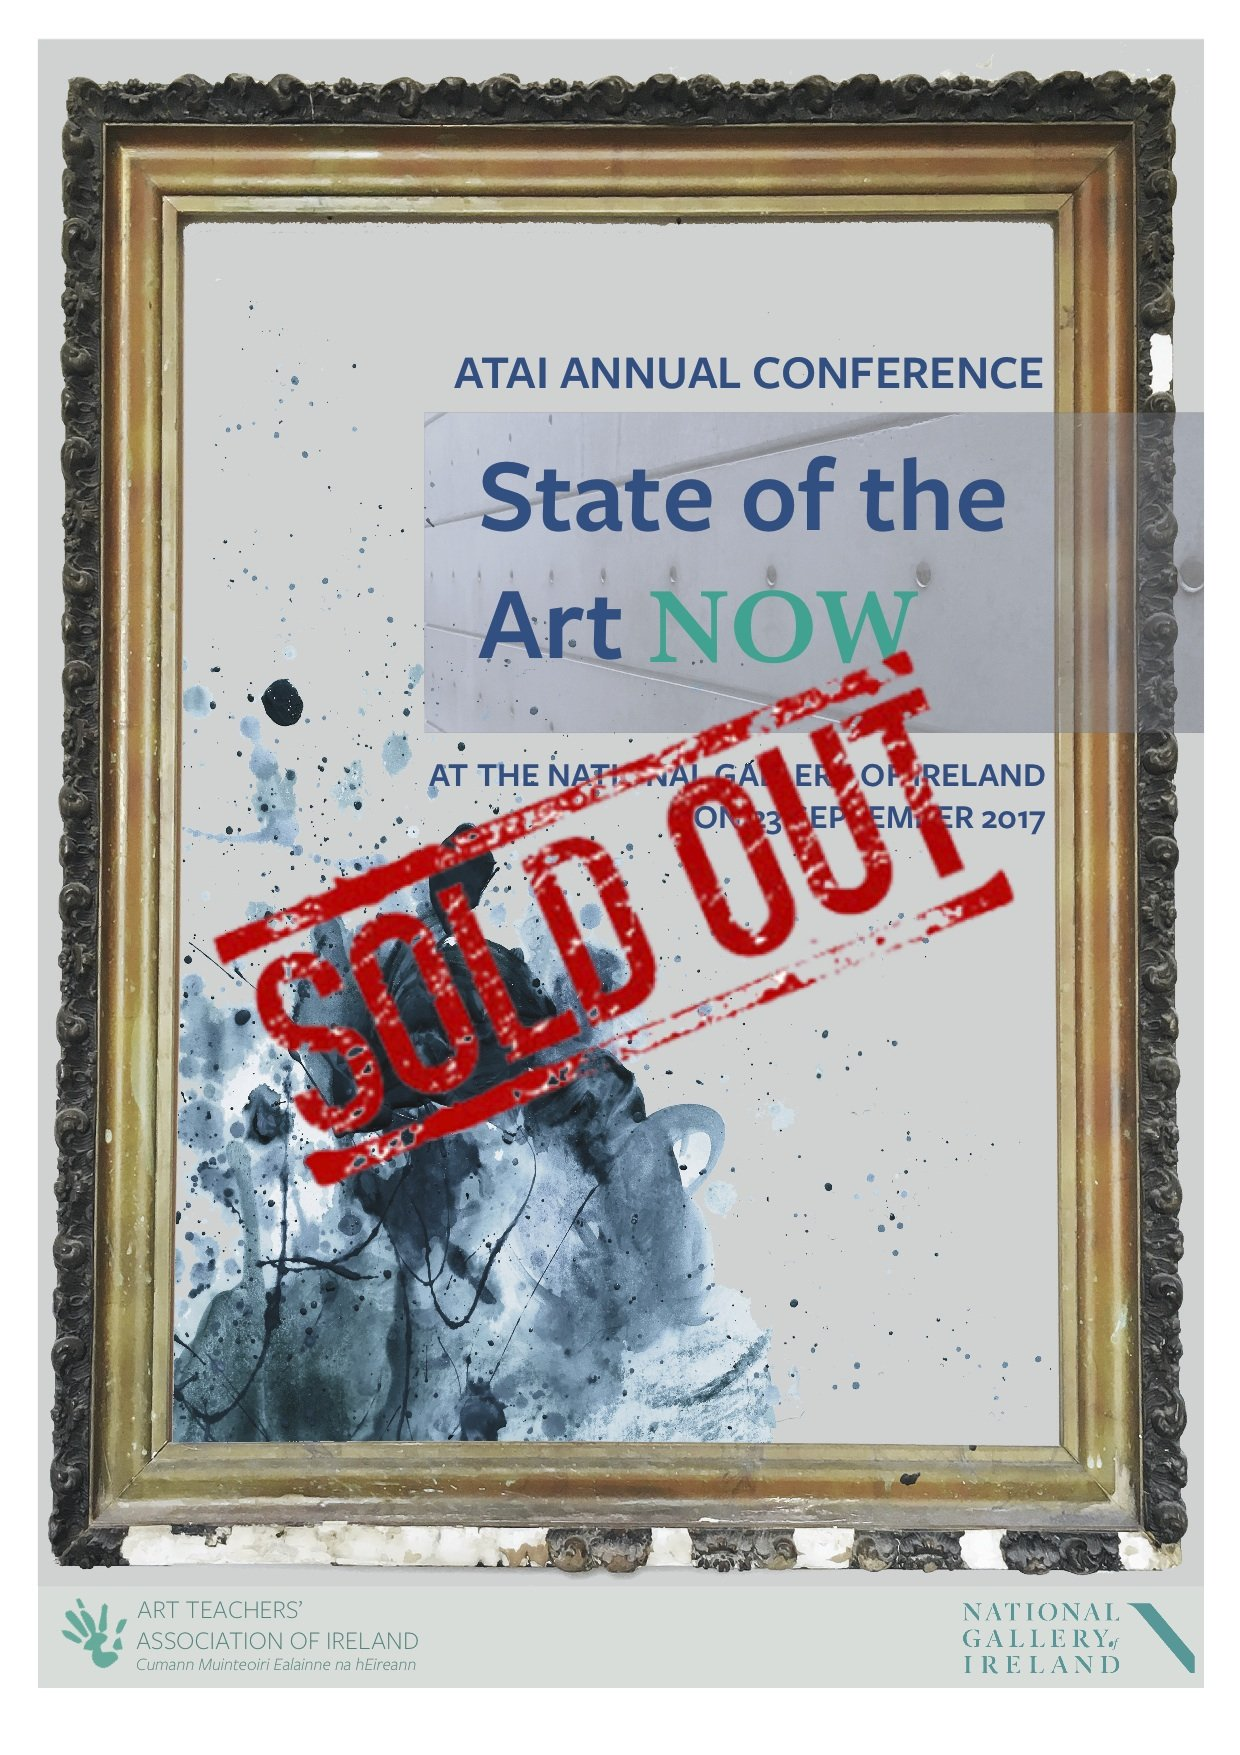 sold out conference image 2017